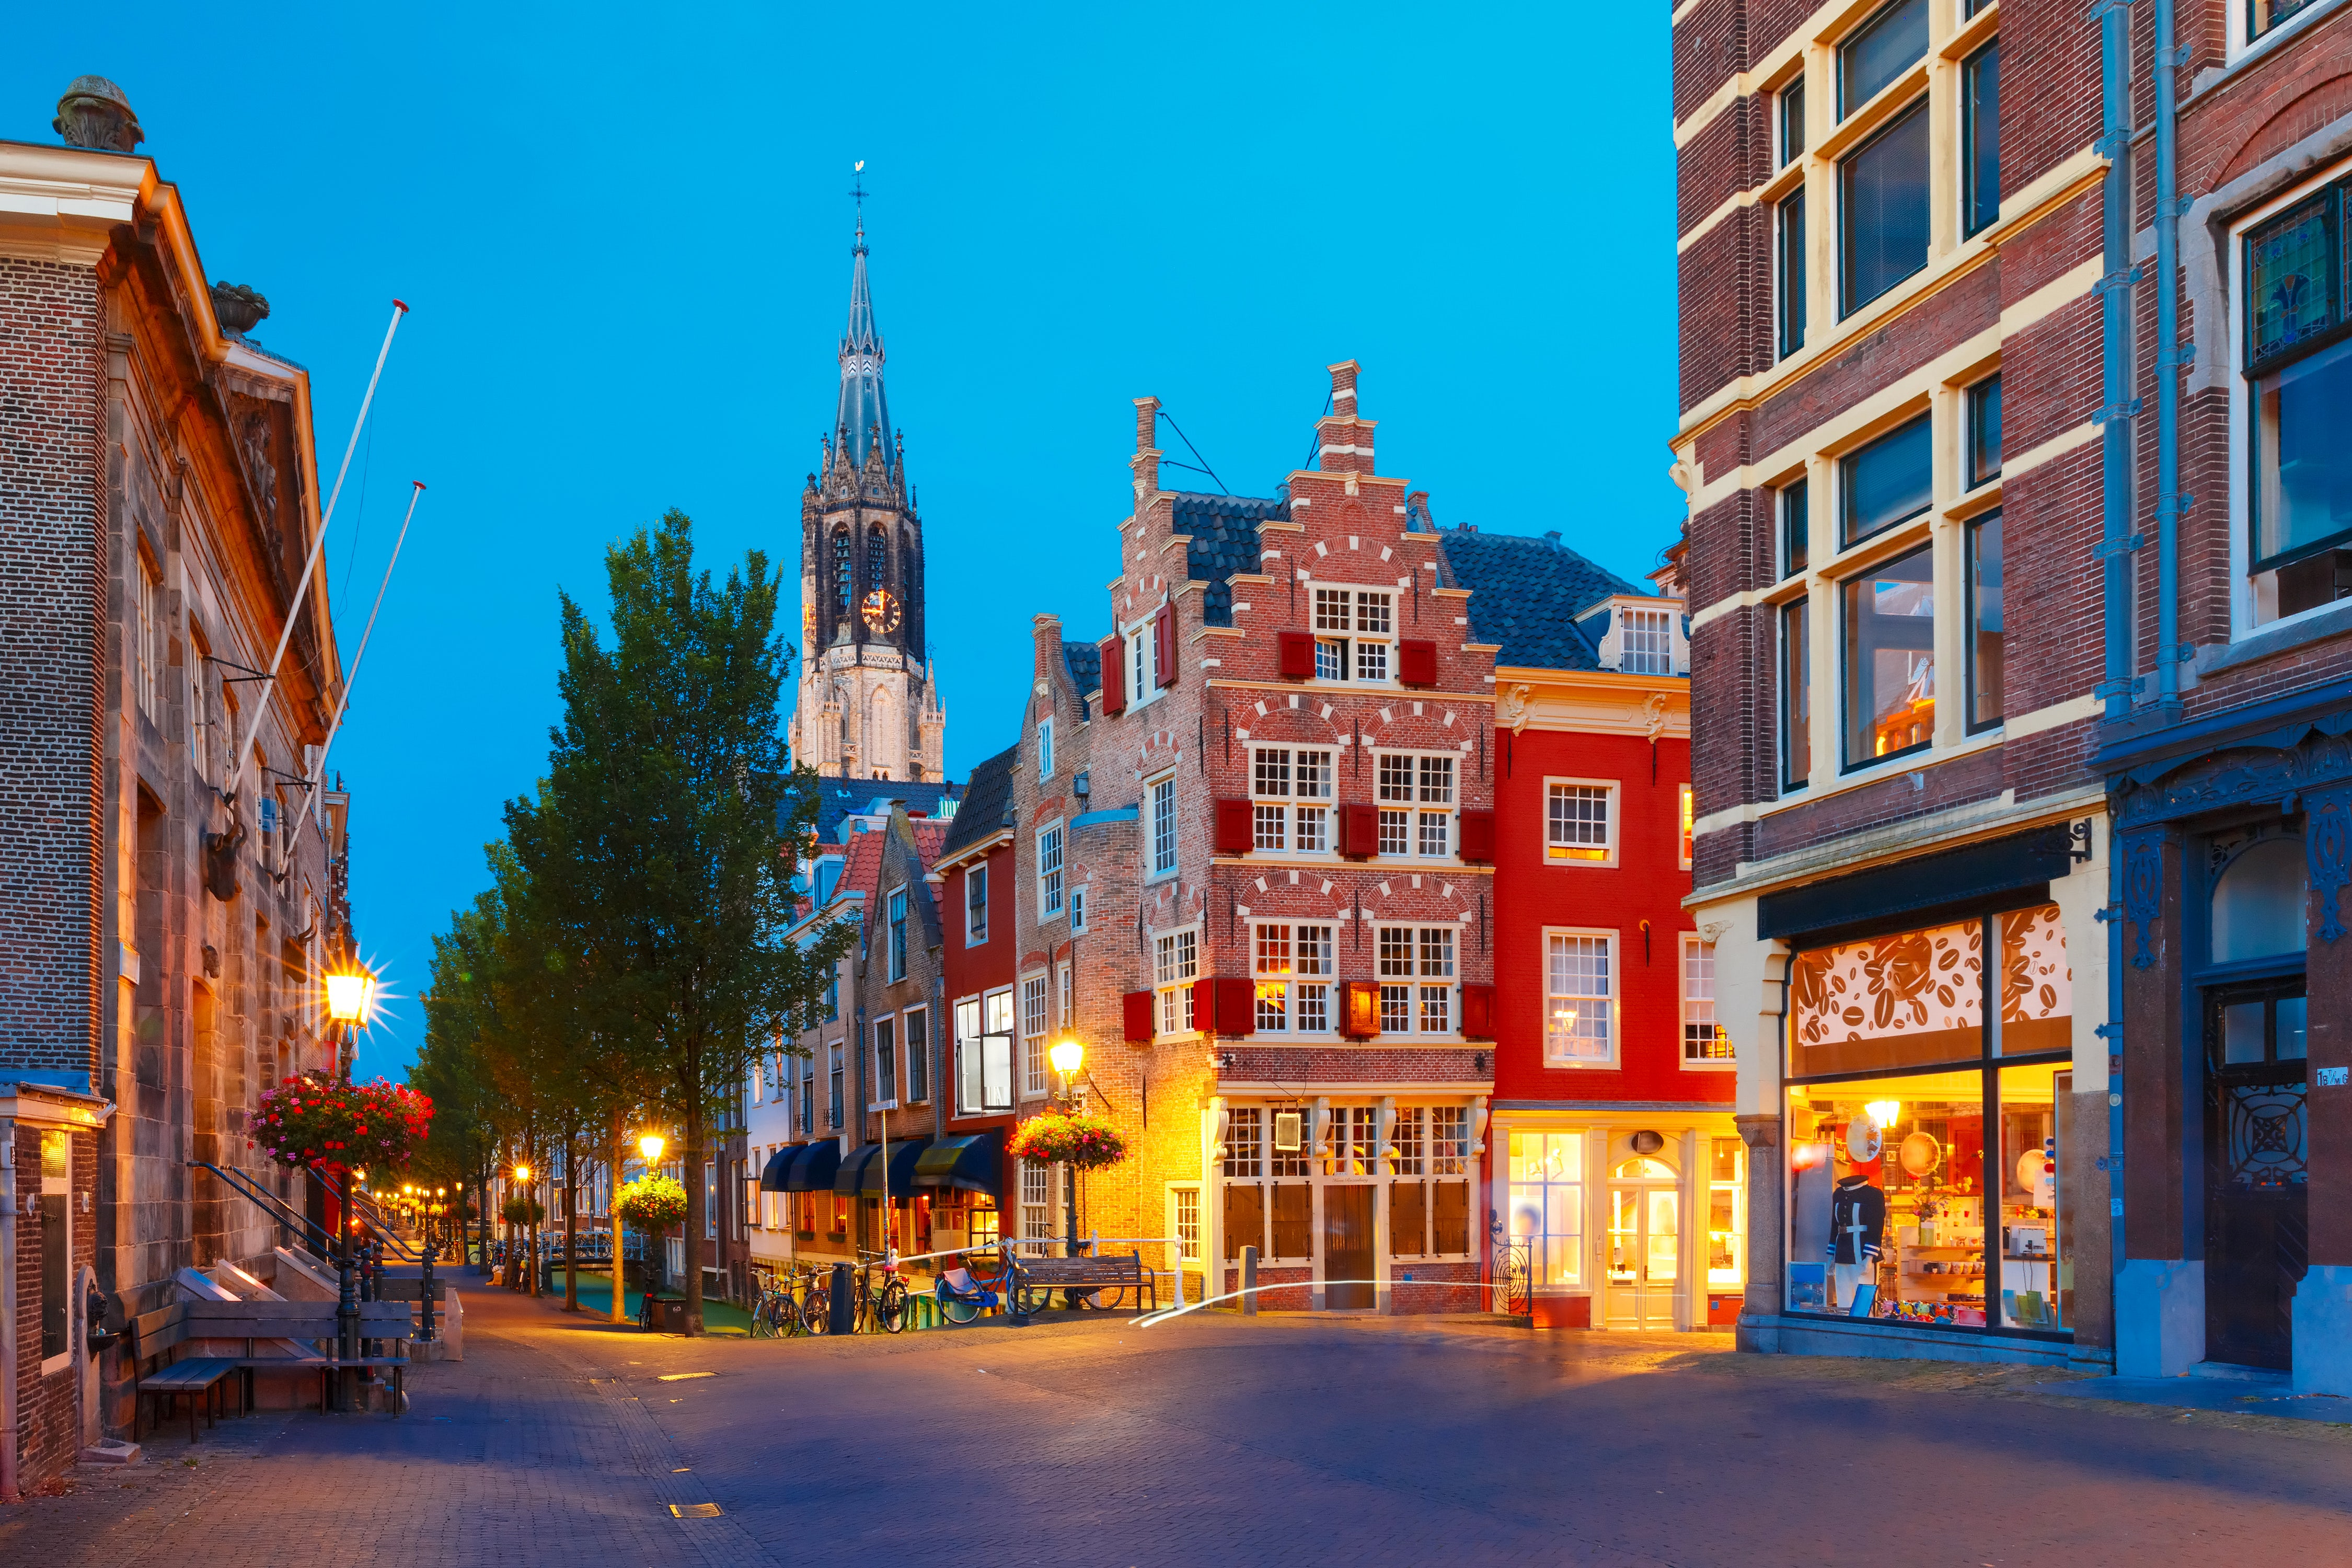 Delft: Hometown of The Girl with the Pearl Earring